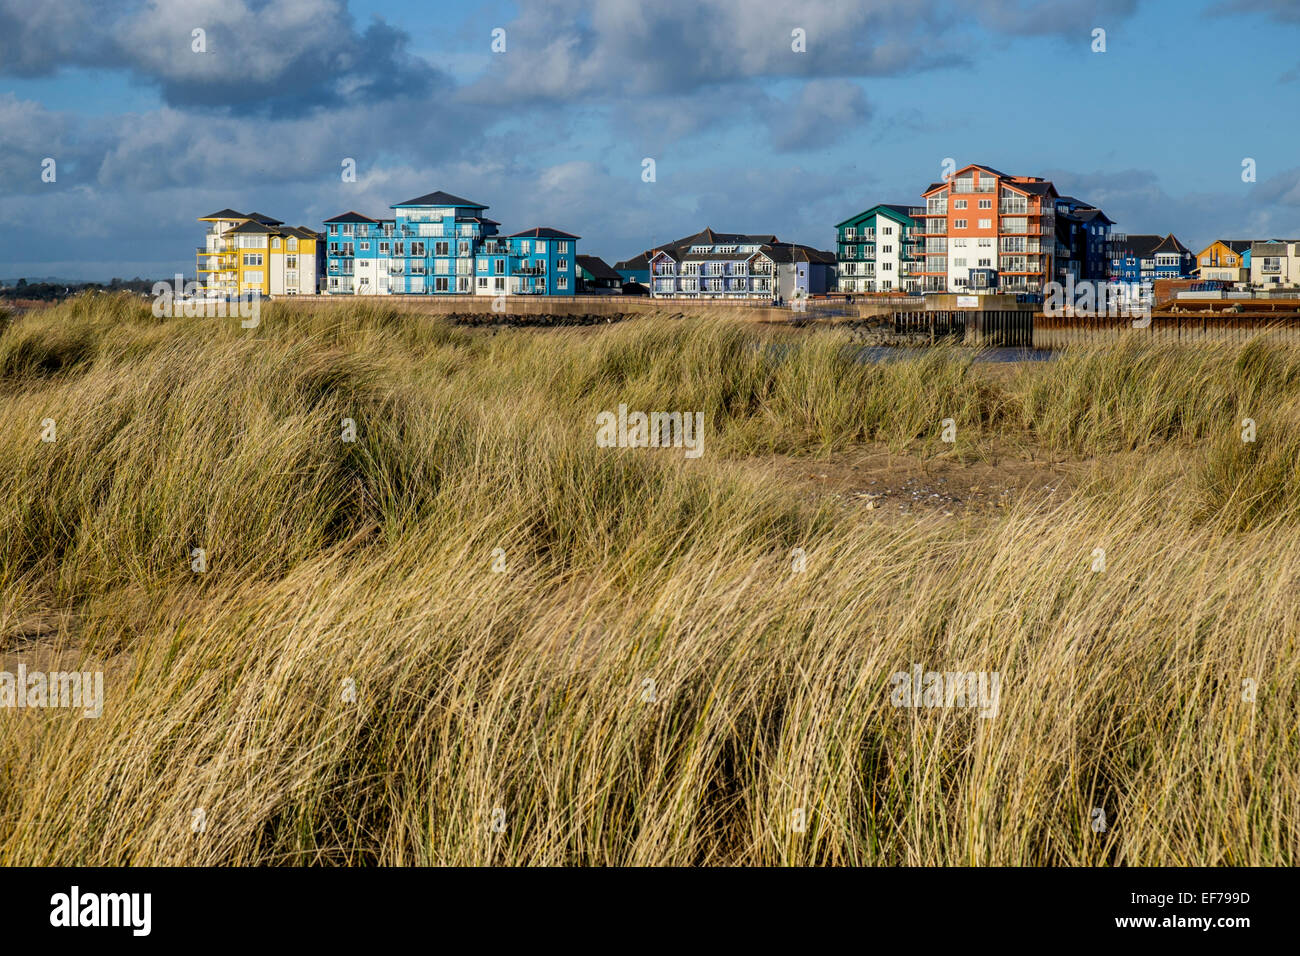 Modern apartments on the waterfront in Exmouth - Stock Image